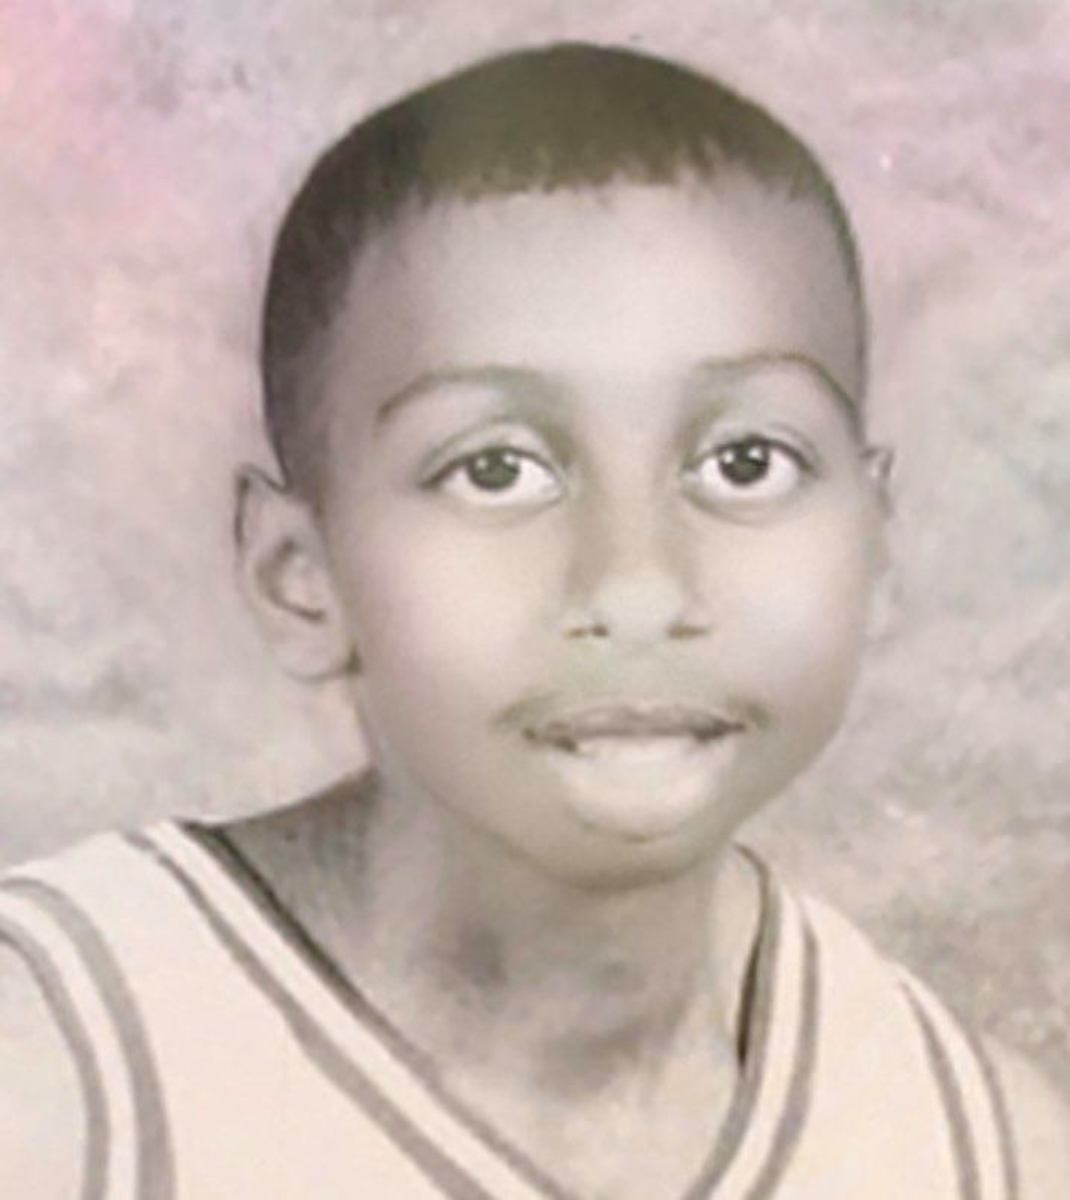 Stephen A. Smith Posted A Hilarious Photo Of Himself And Twitter Exploded